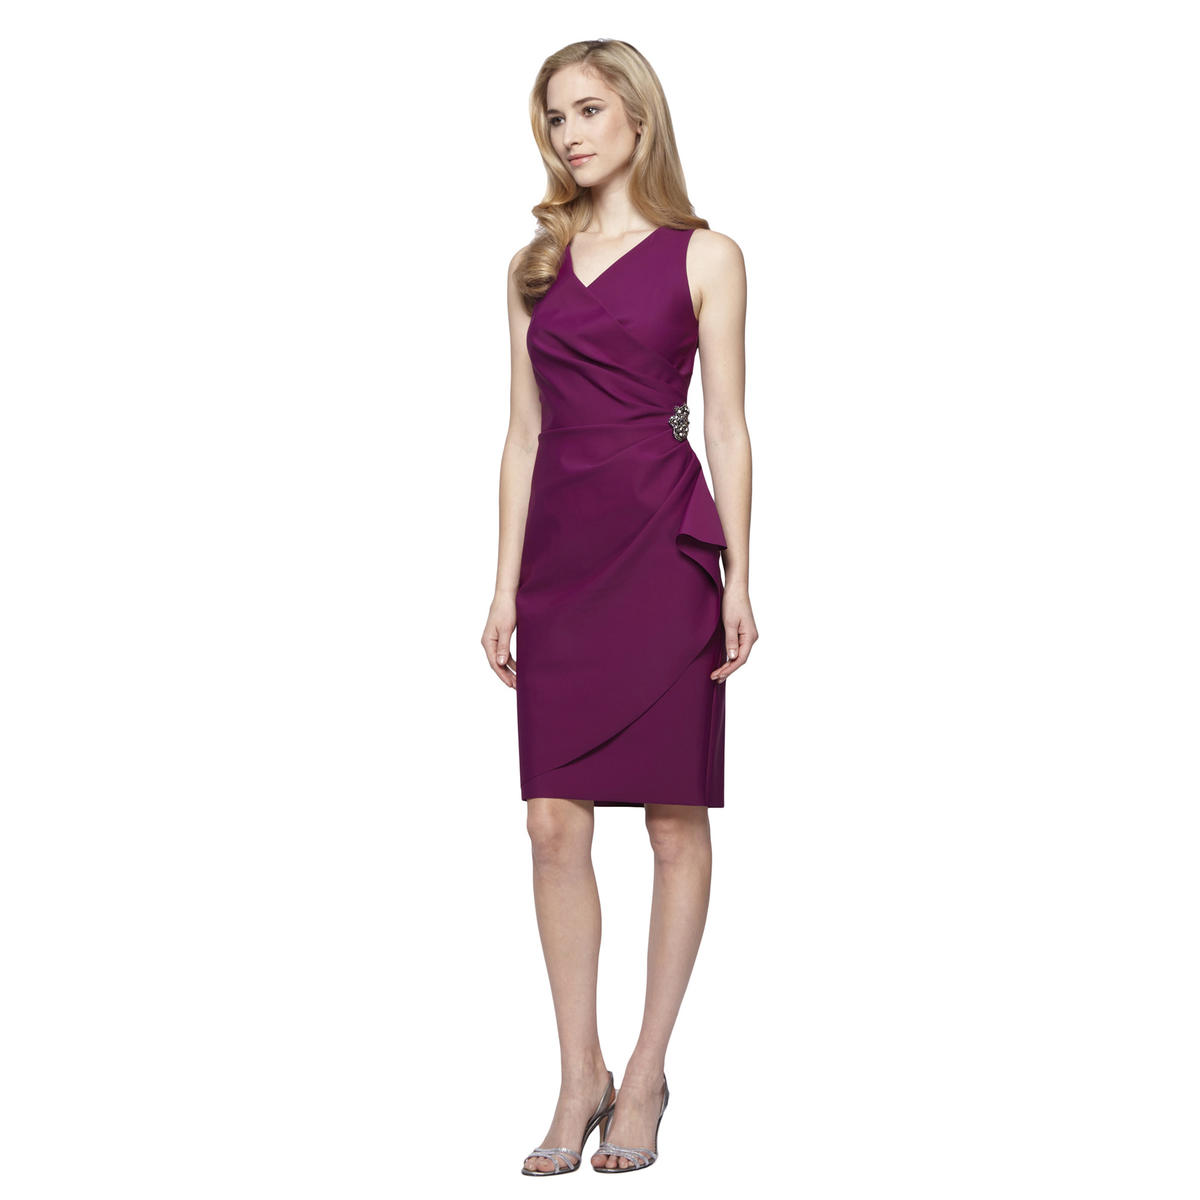 ALEX APPAREL GROUP INC - Sleeveless Ruched V-Neck Wrap Dress